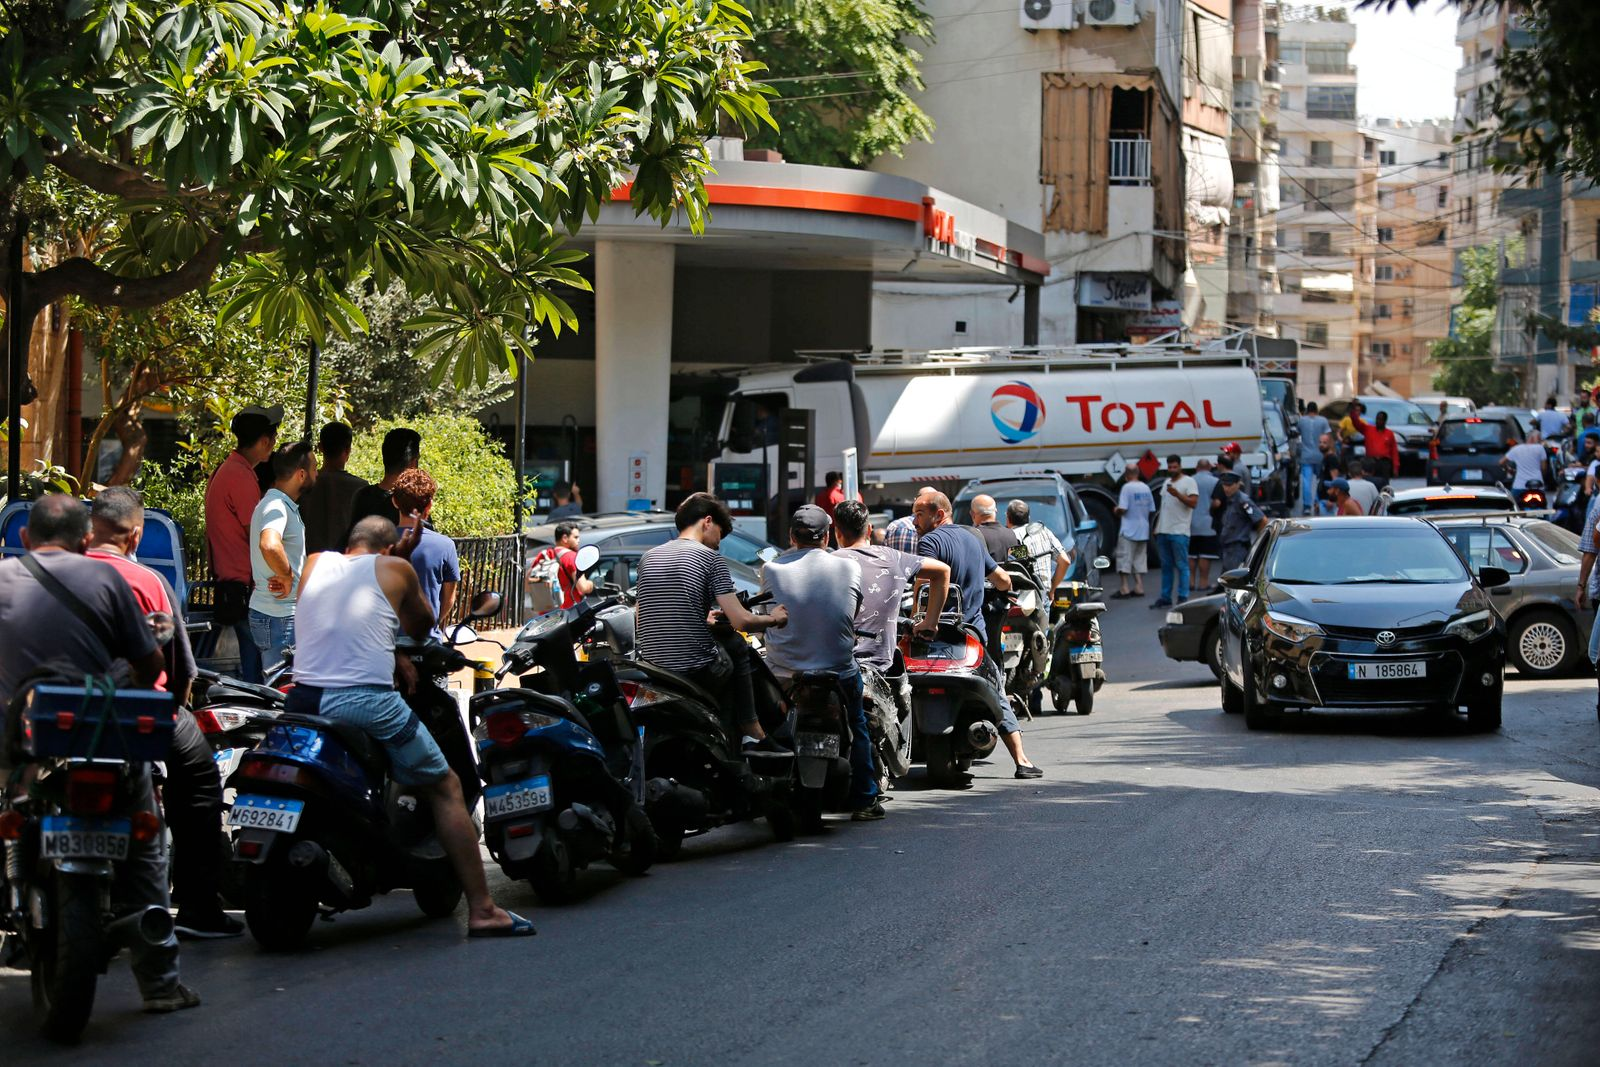 (210831) -- BEIRUT, Aug. 31, 2021 -- A crowd of people are seen in front of a petrol station in Beirut, Lebanon, on Aug